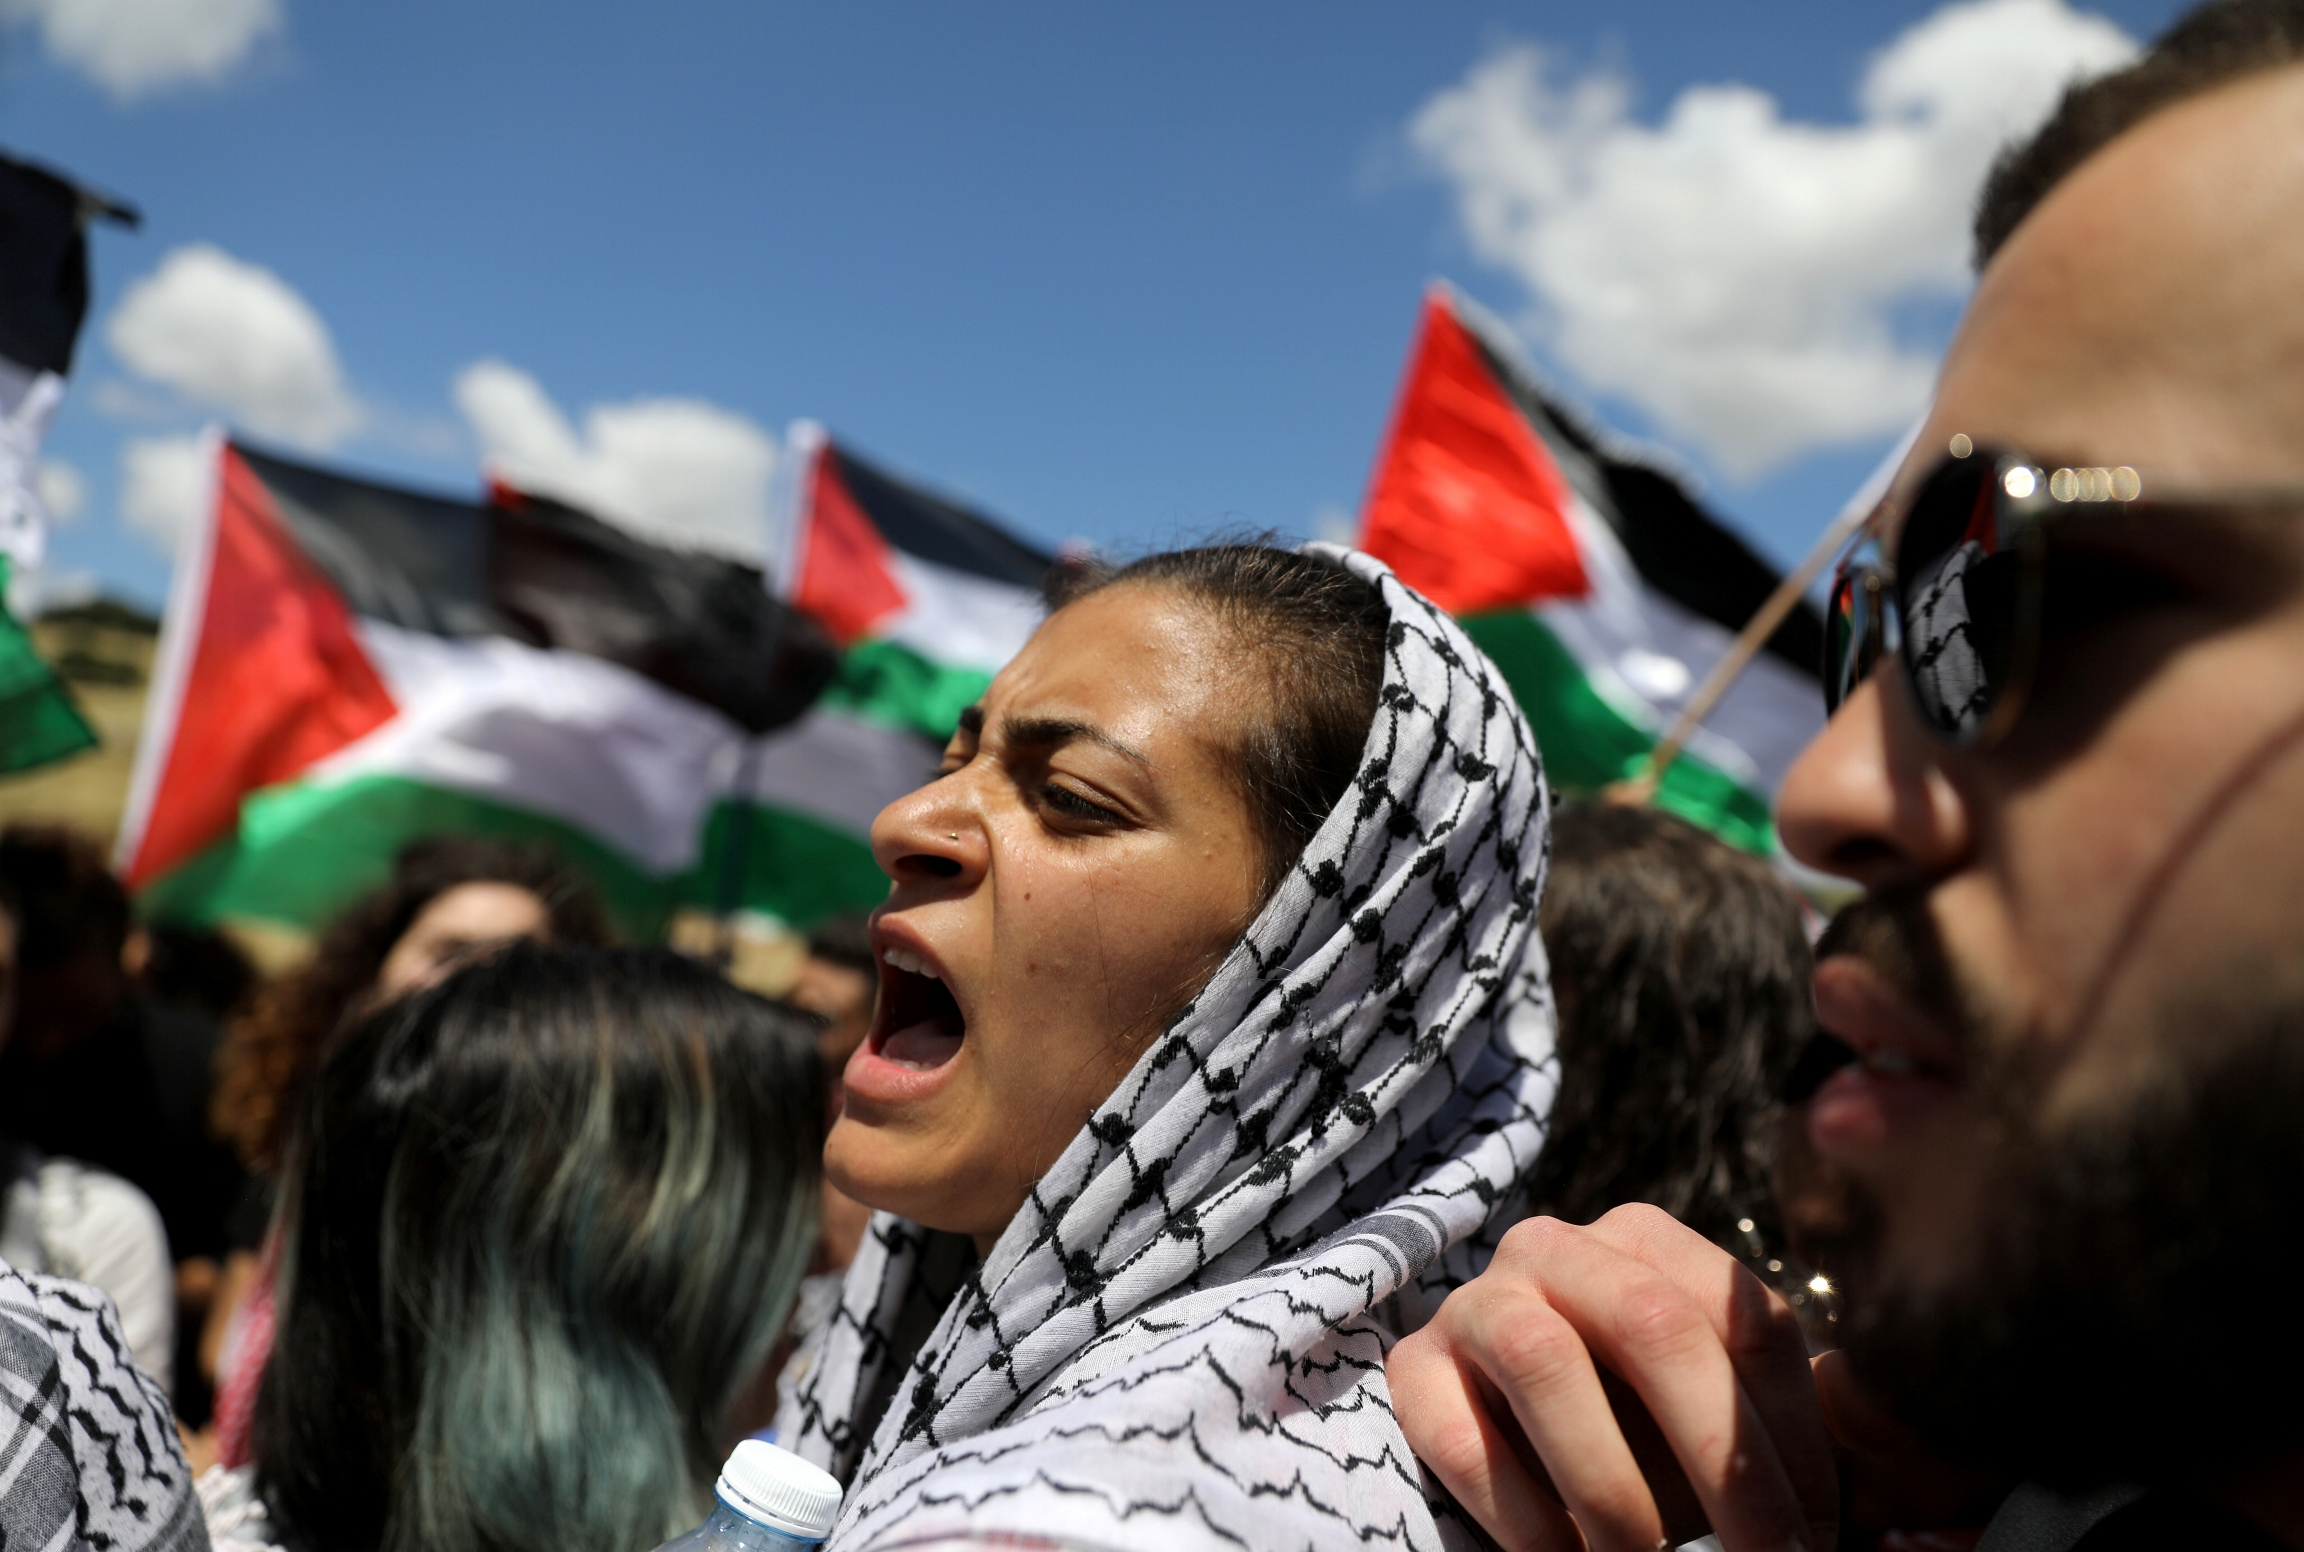 A woman shouts next to protesters holding Palestinian flag.